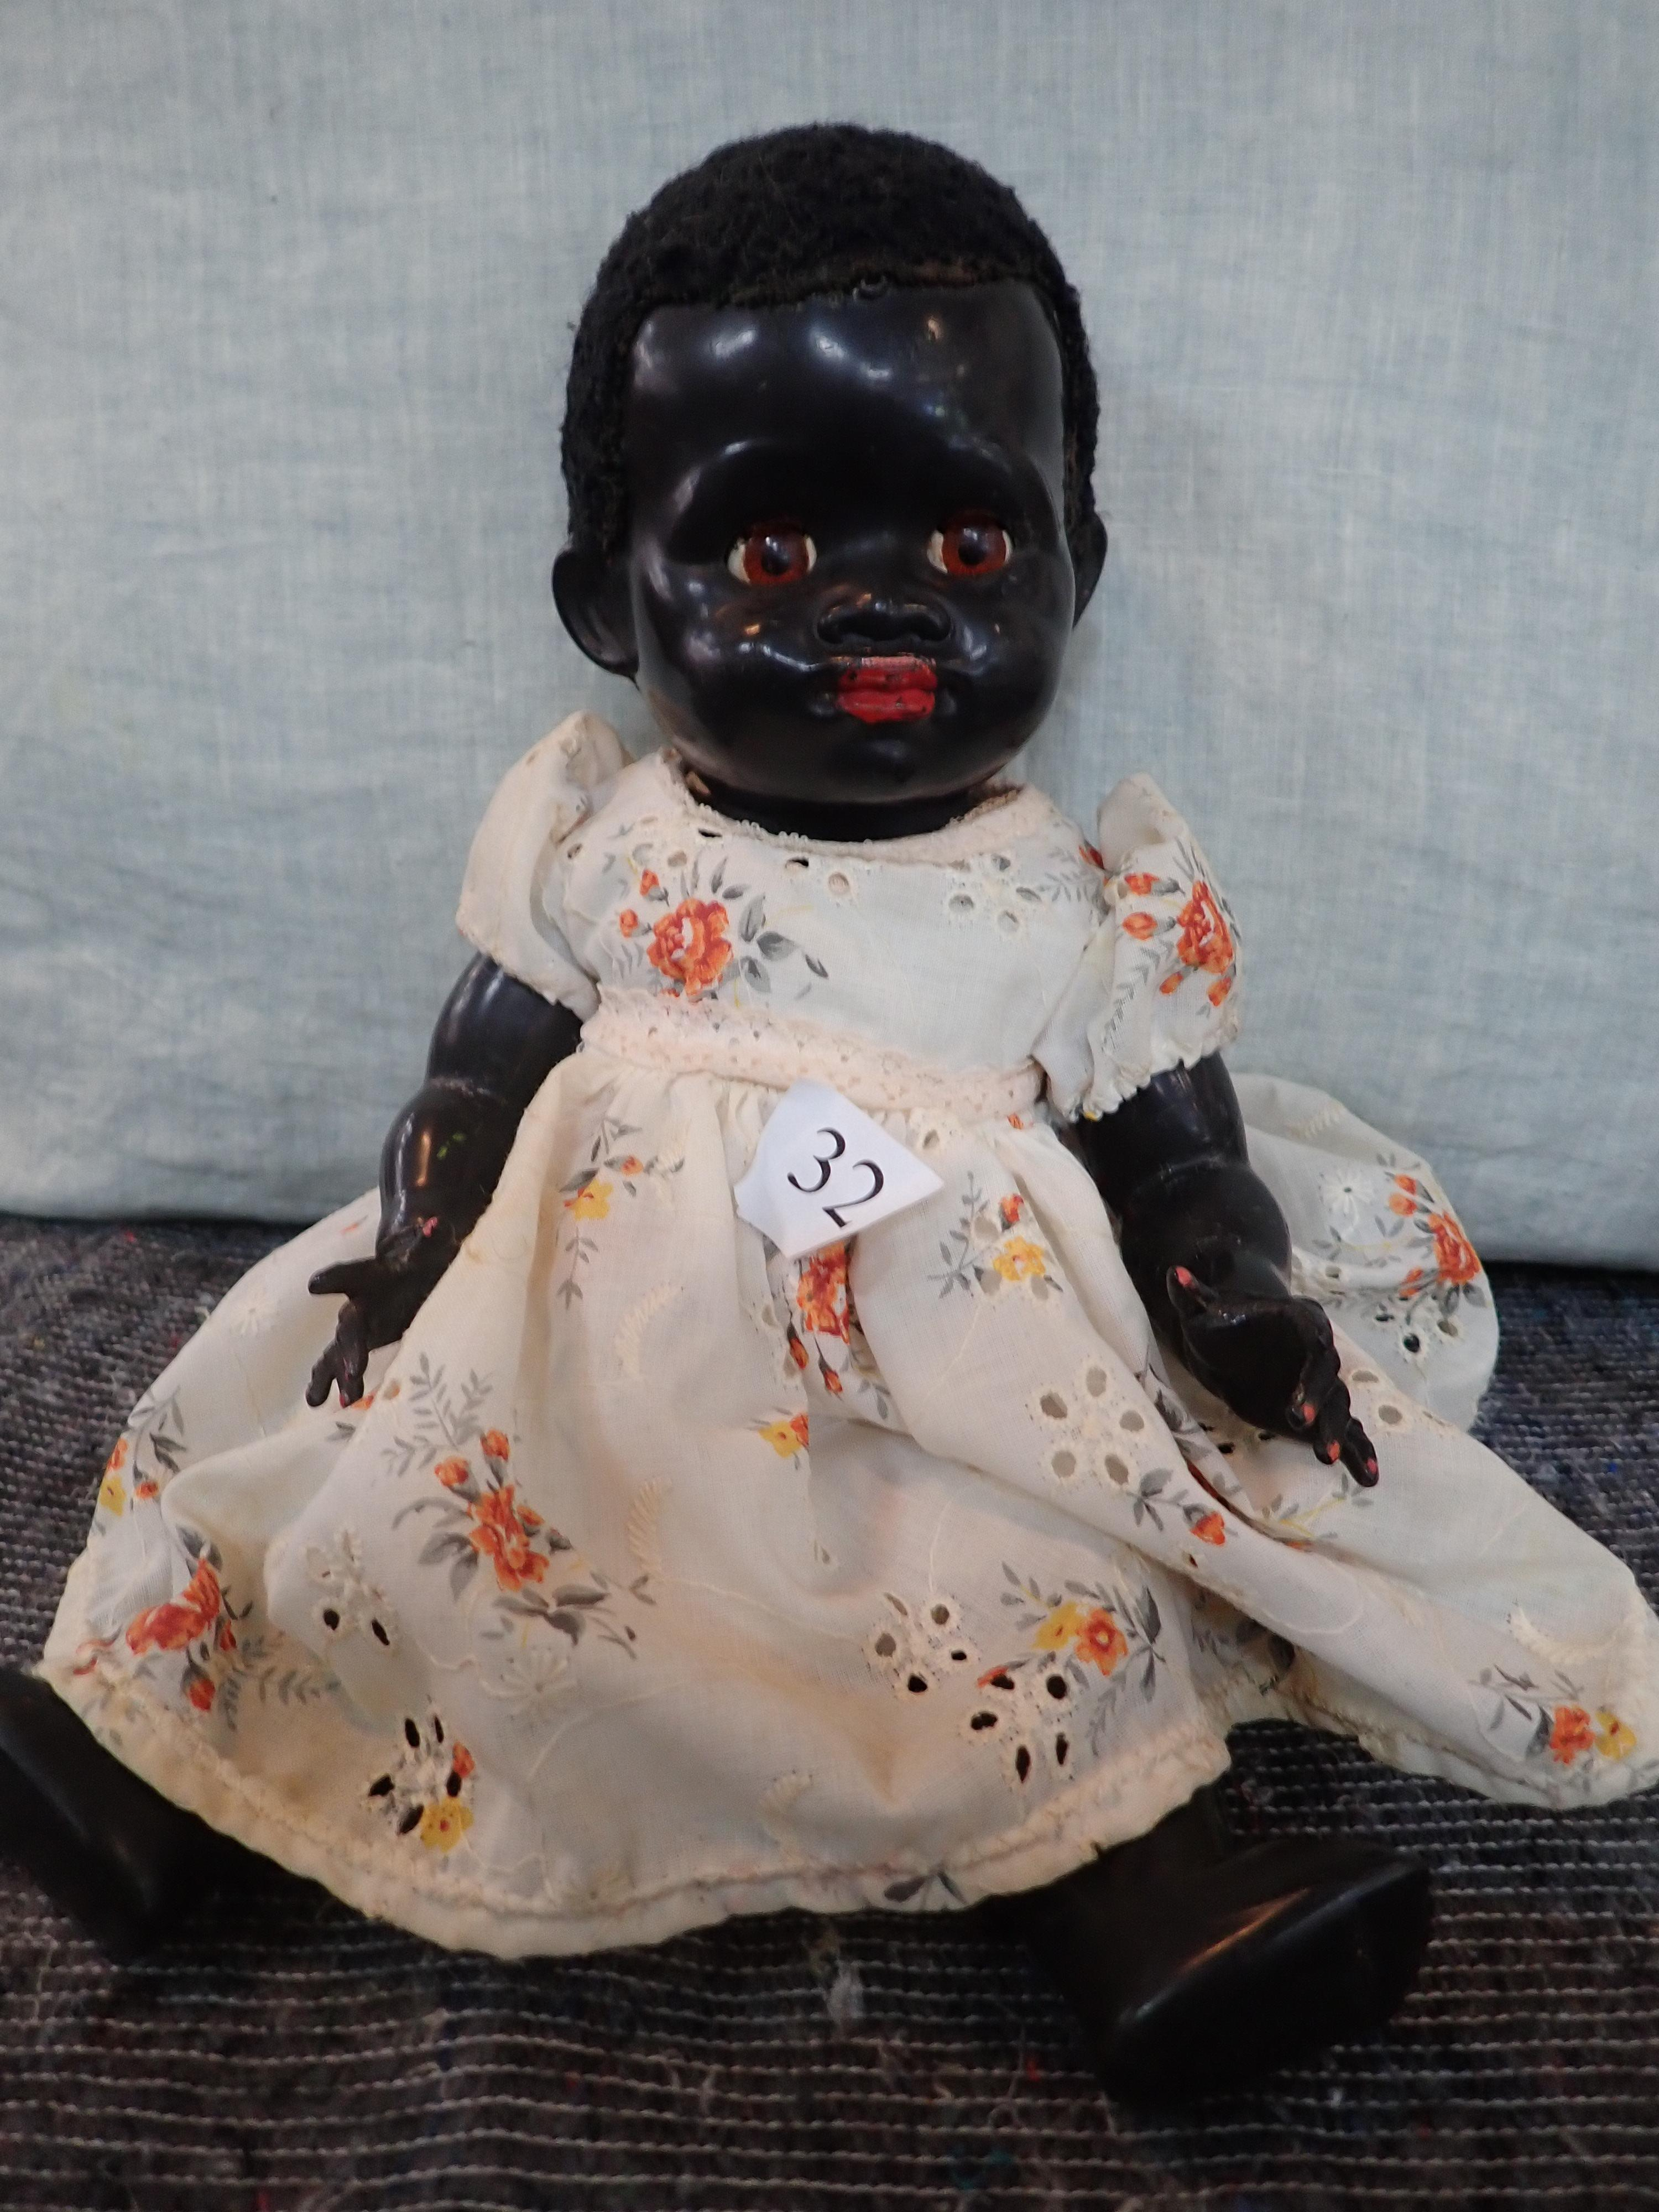 """13"""" PEDIGREE HARD PLASTIC BLACK DOLL, MADE IN ENGLAND, MOVEABLE EYES, HEAD, ARMS AND LEGS, FROM 1950'S GC WITH VOICE BOX A/F FINGER NAIL& LIPS REPAINTED"""